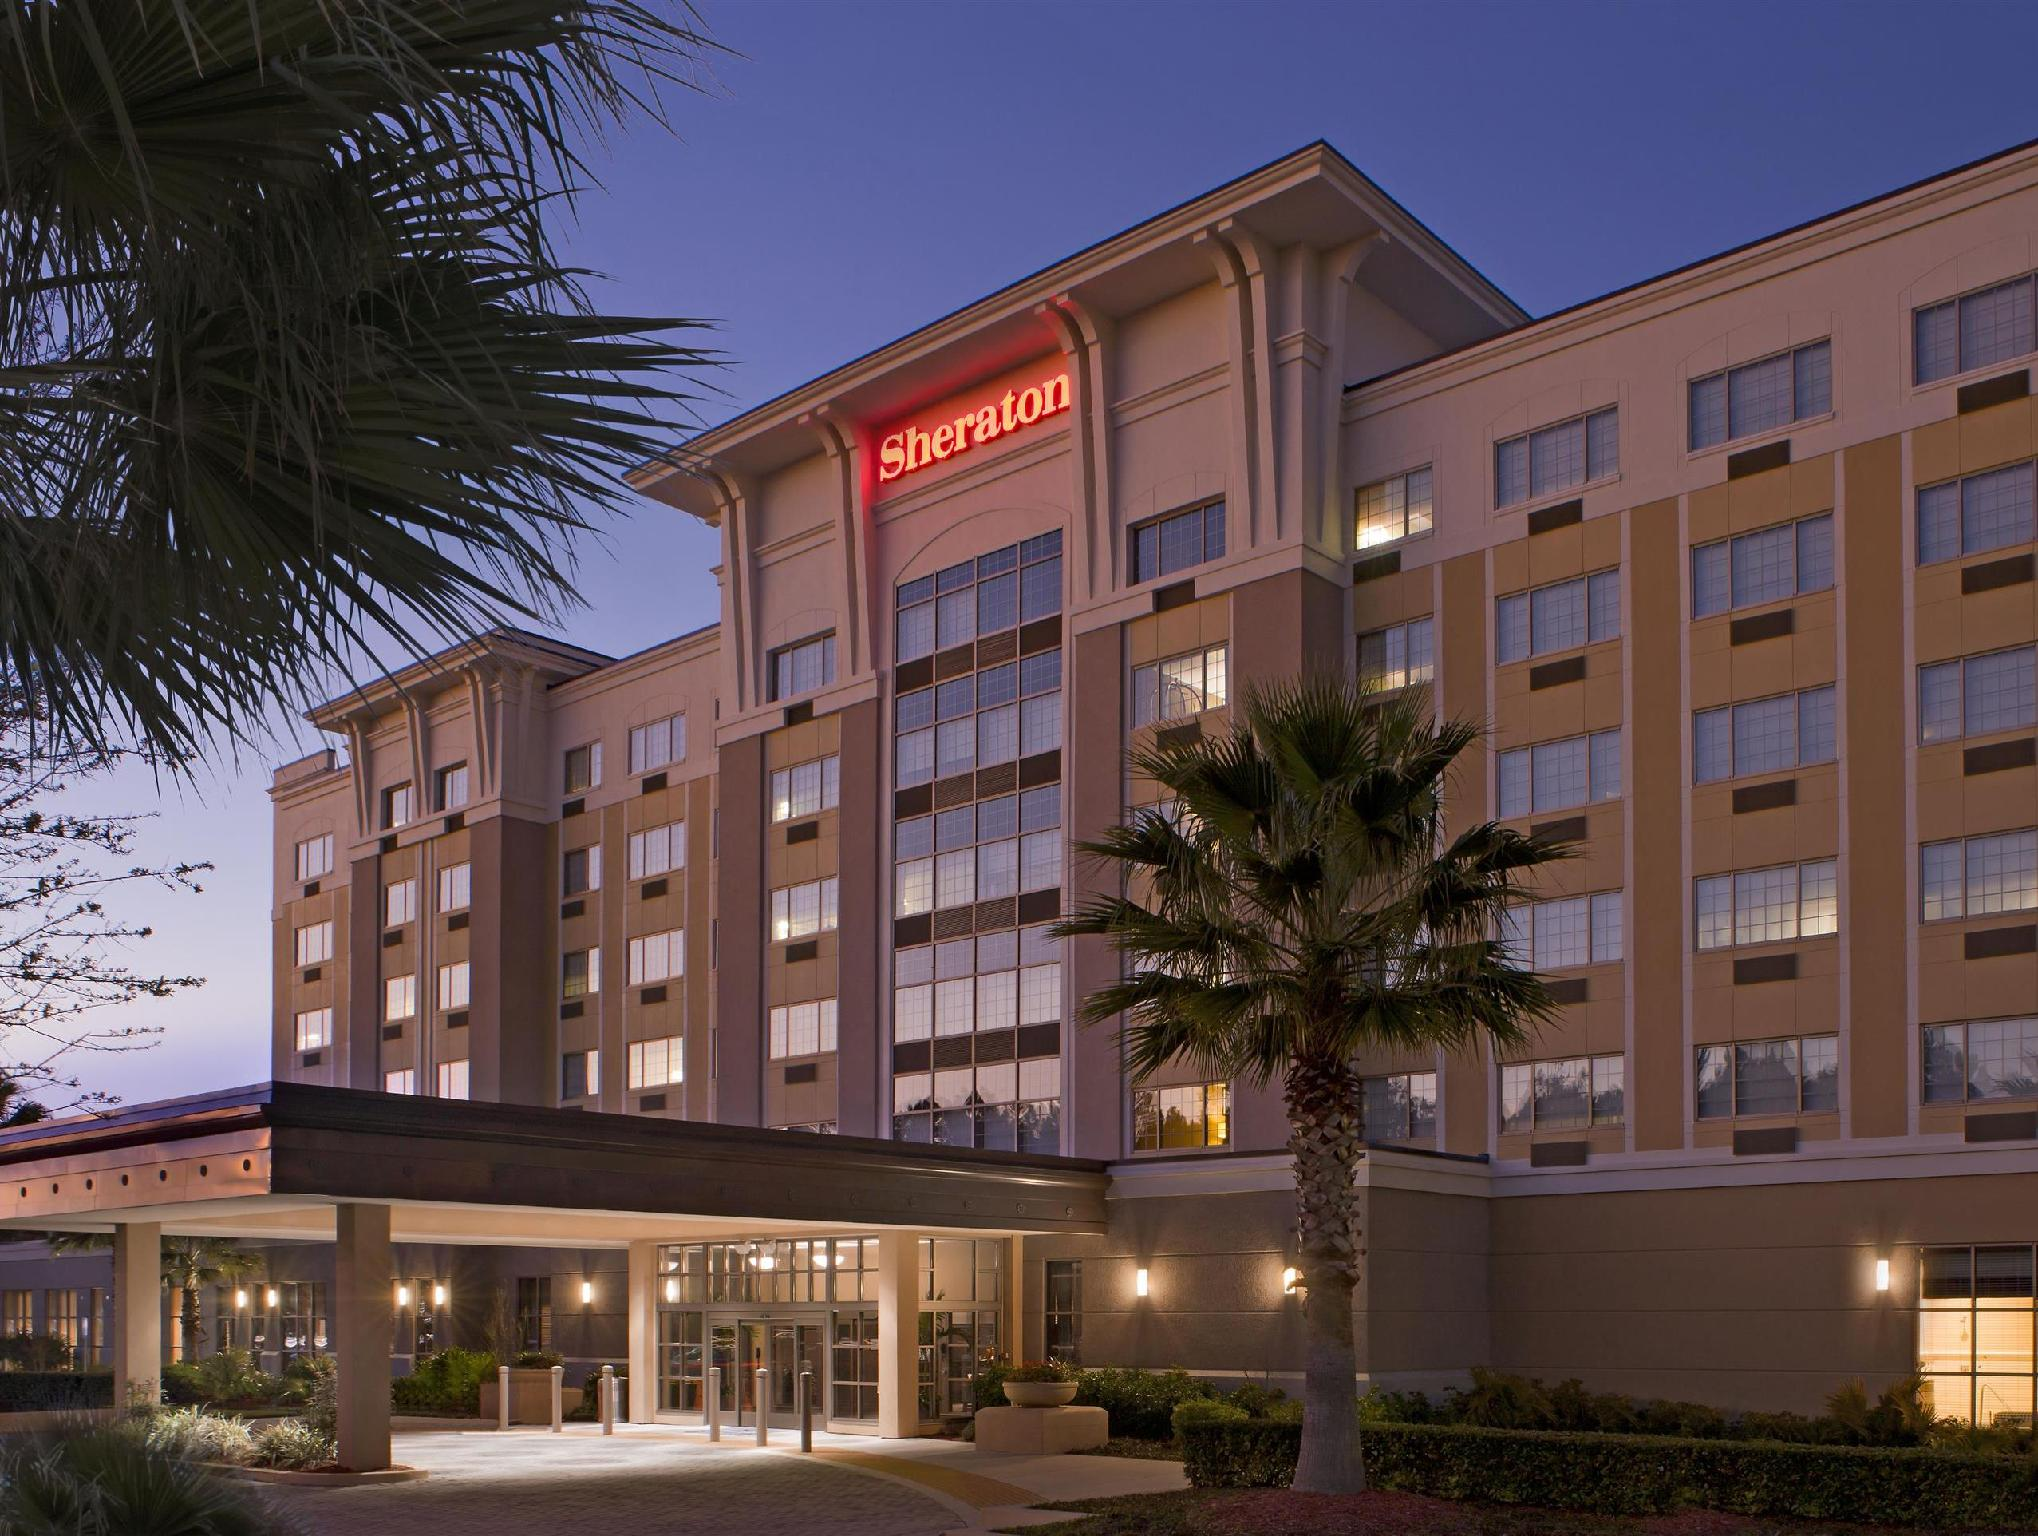 Sheraton Jacksonville Hotel In Jacksonville Fl Room Deals Photos Reviews